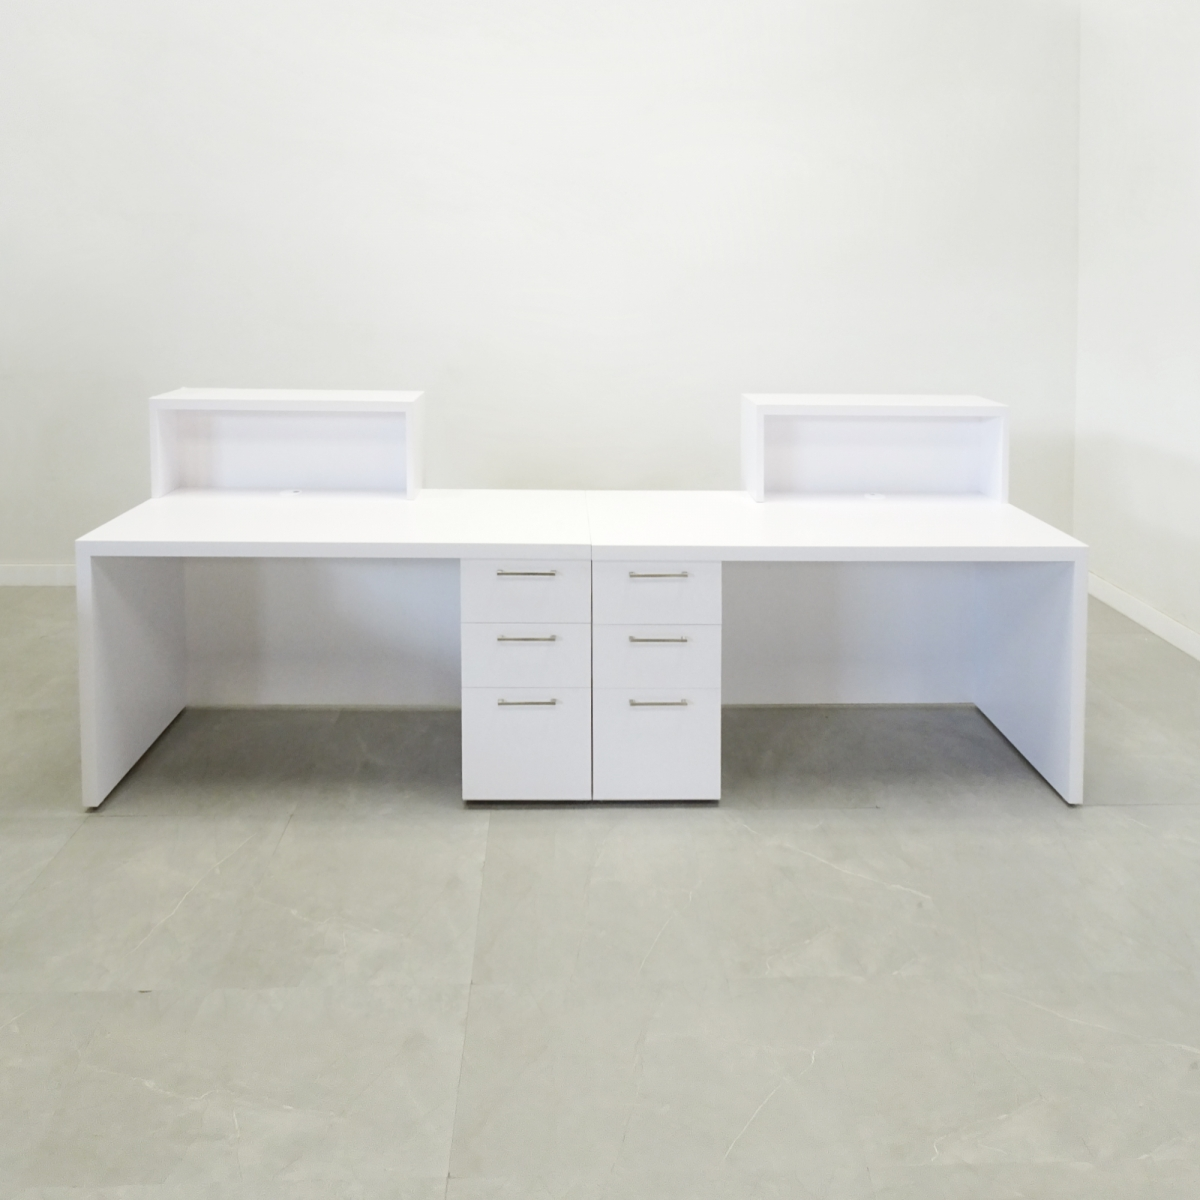 Los Angeles Desk with Double Counter